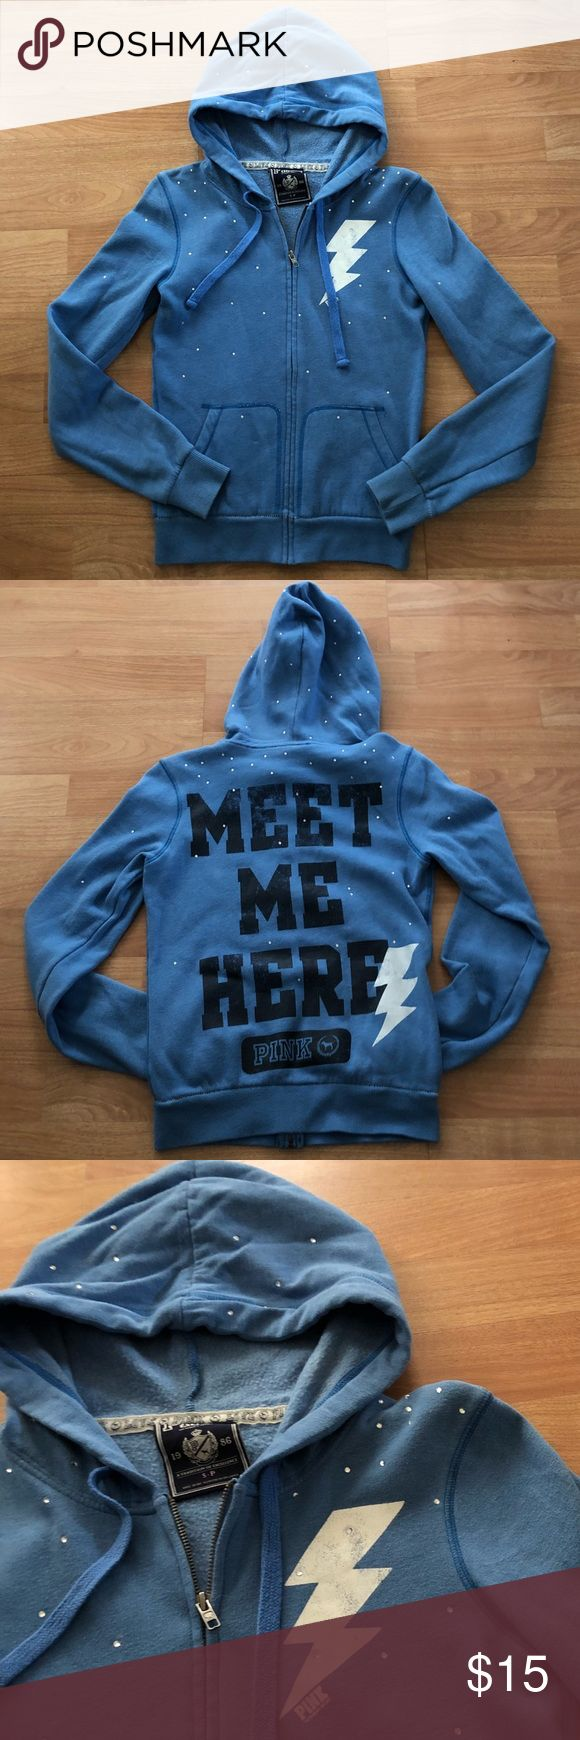 Victoria's Secret Blue Zip Up Hoodie VS PINK powder blue zip up hooded jacket with jewels along shoulders and hood and lightning bolt graphic on front. Back has graphic as well in a weathered style. Inside is soft, fuzzy and warm (see pic) and has pockets and drawstrings. PINK Victoria's Secret Tops Sweatshirts & Hoodies